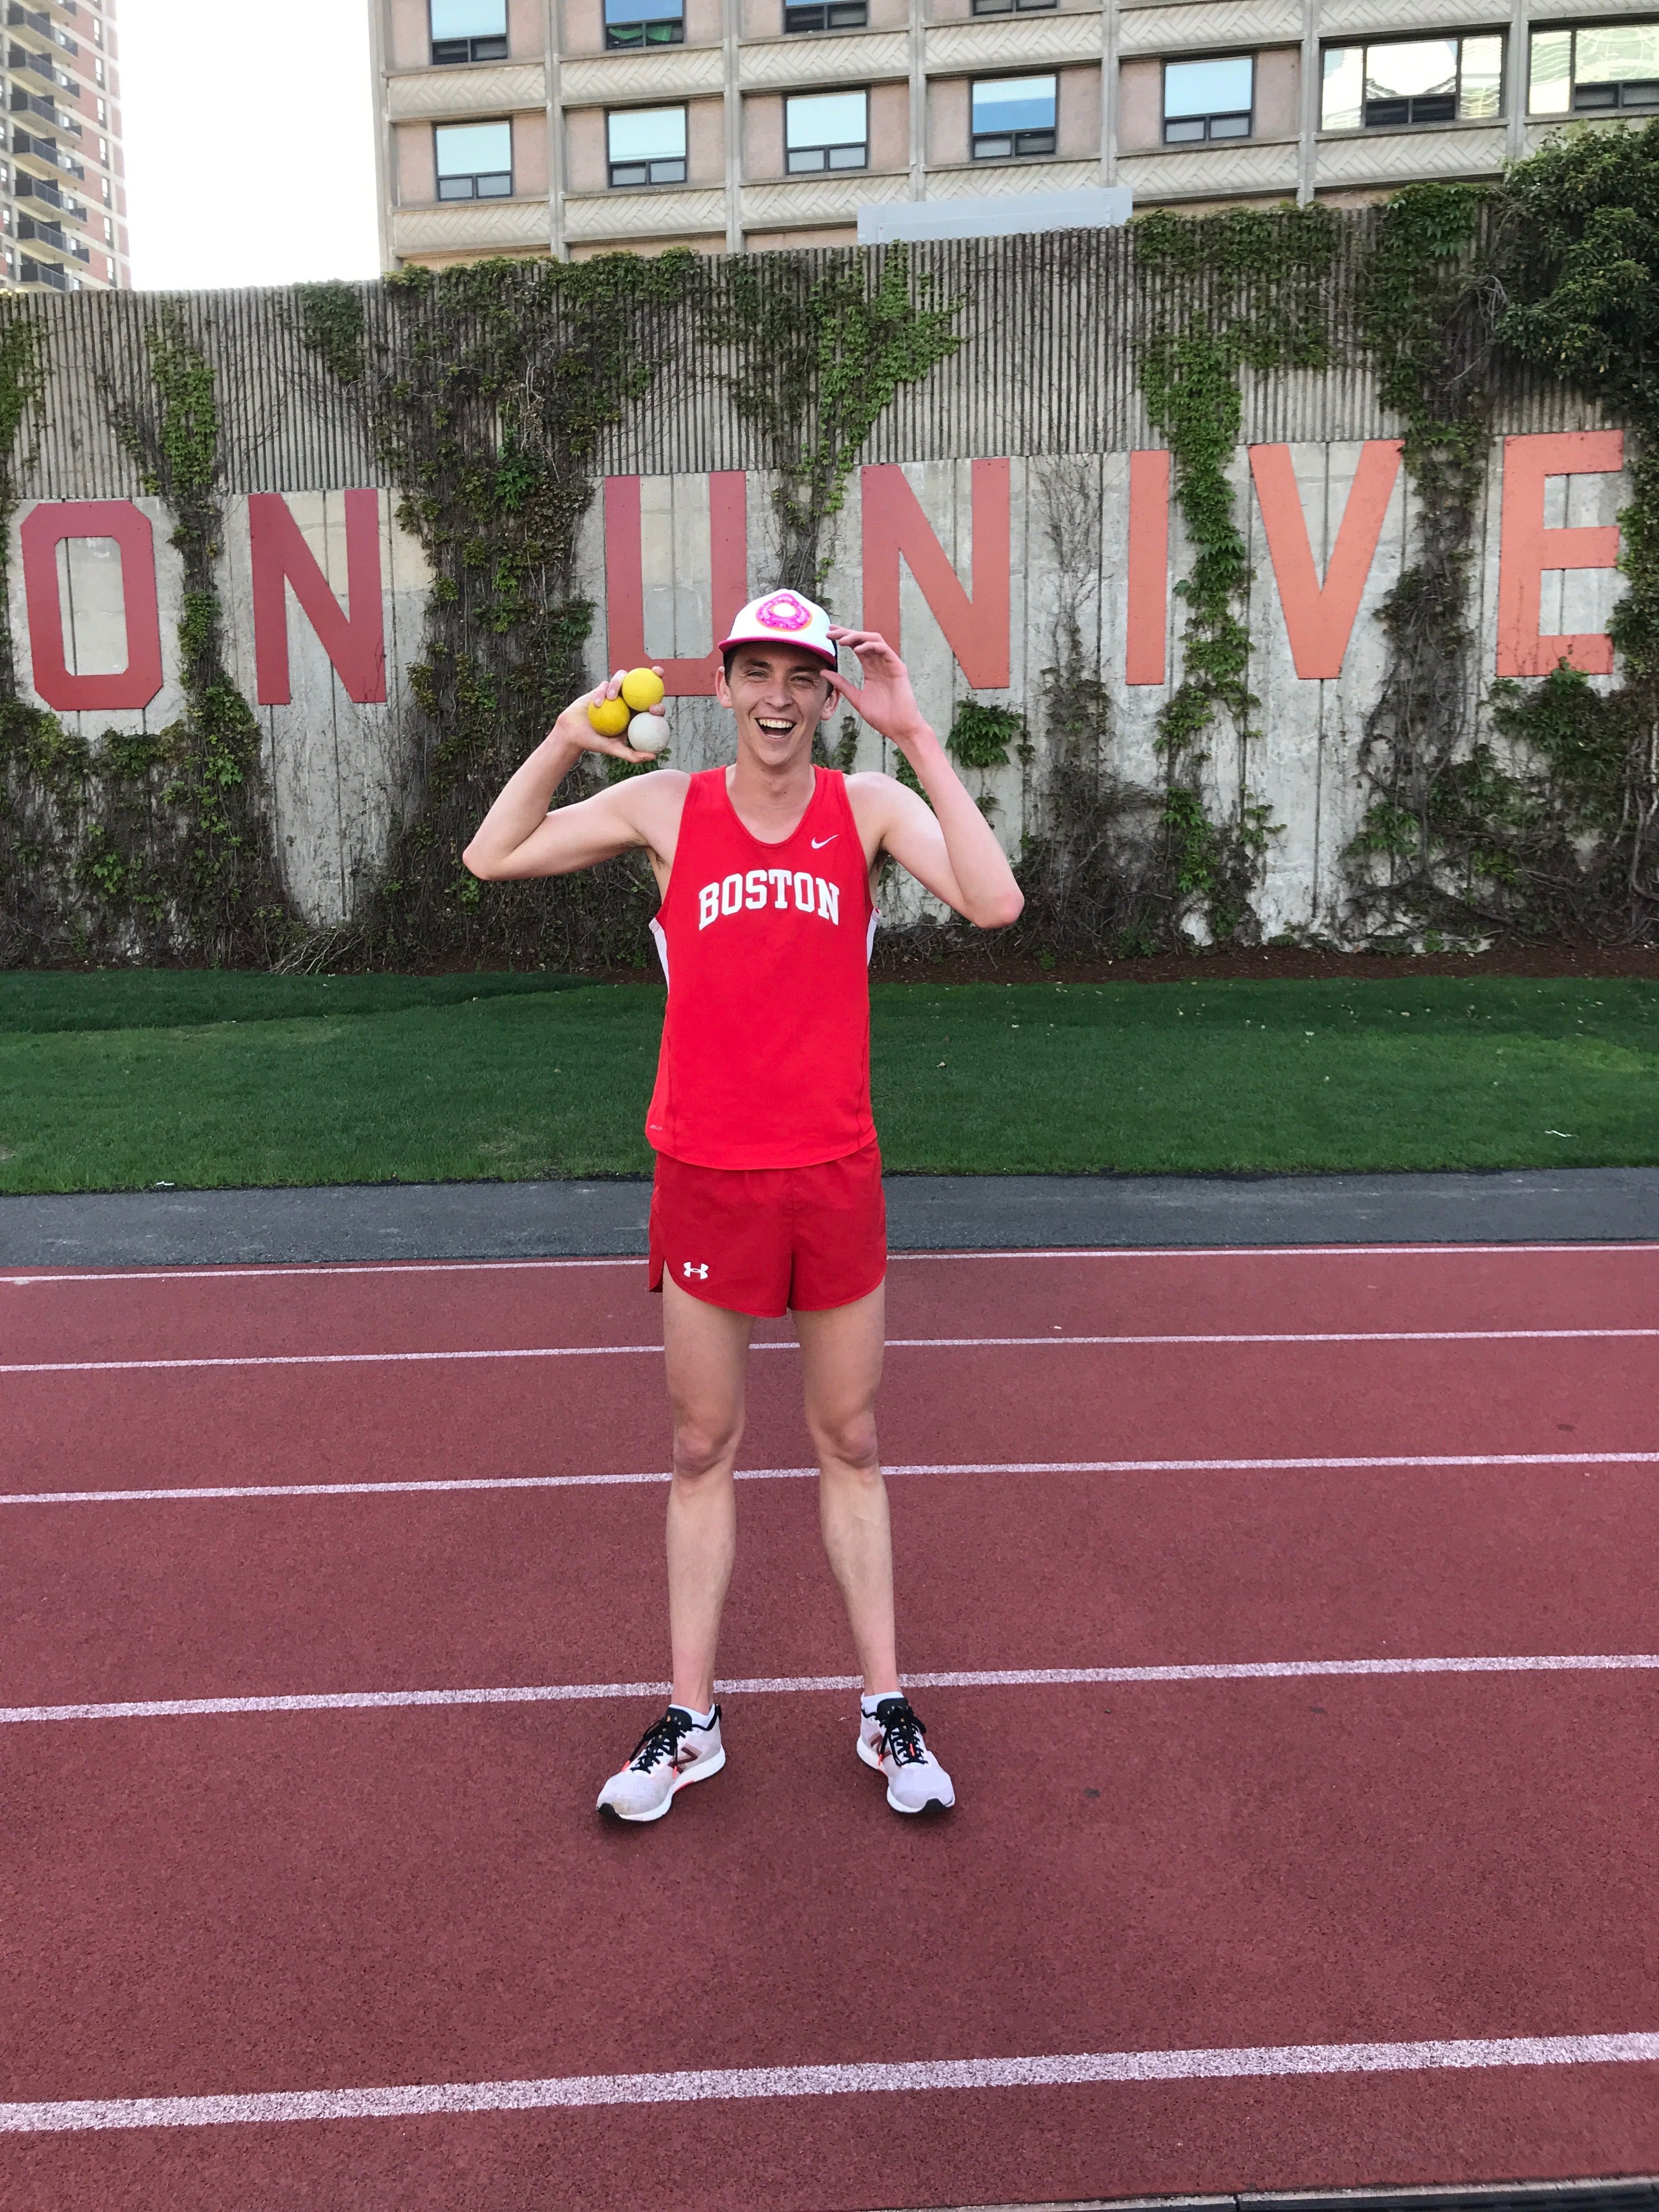 Joggler Sets a World Record in the Mile